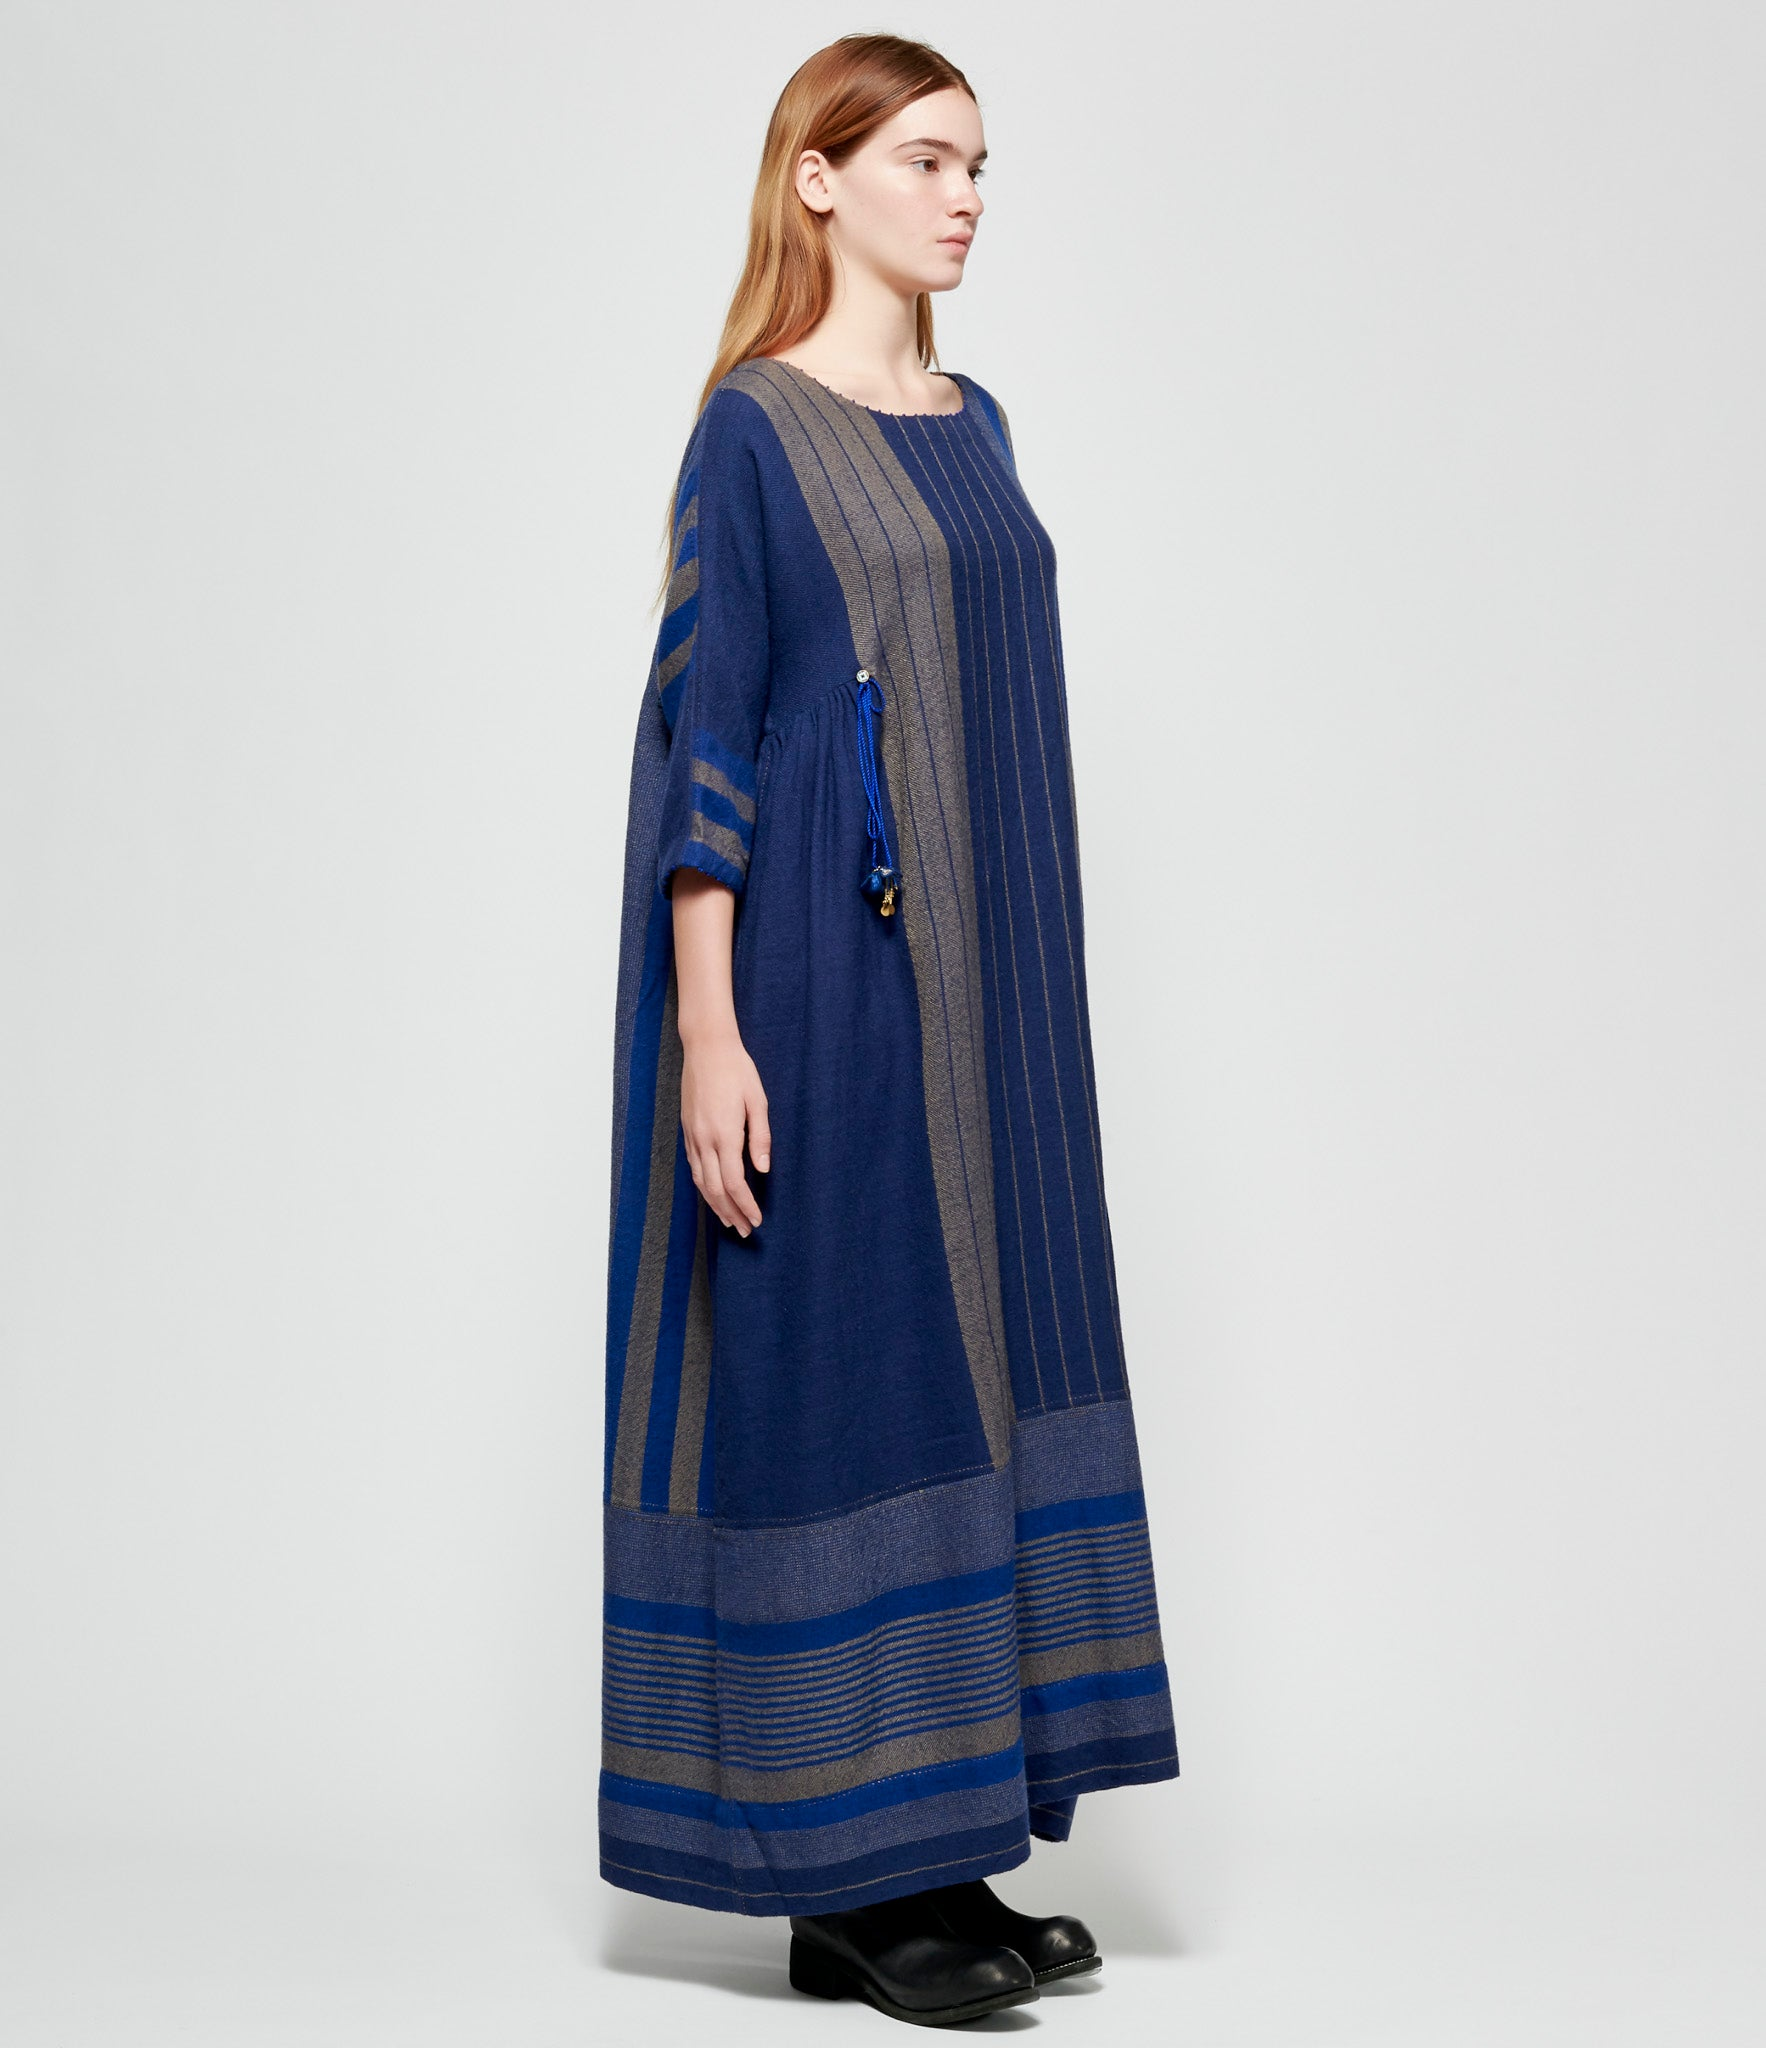 Pero No Embroidery Blue Beige Striped Wool Dress